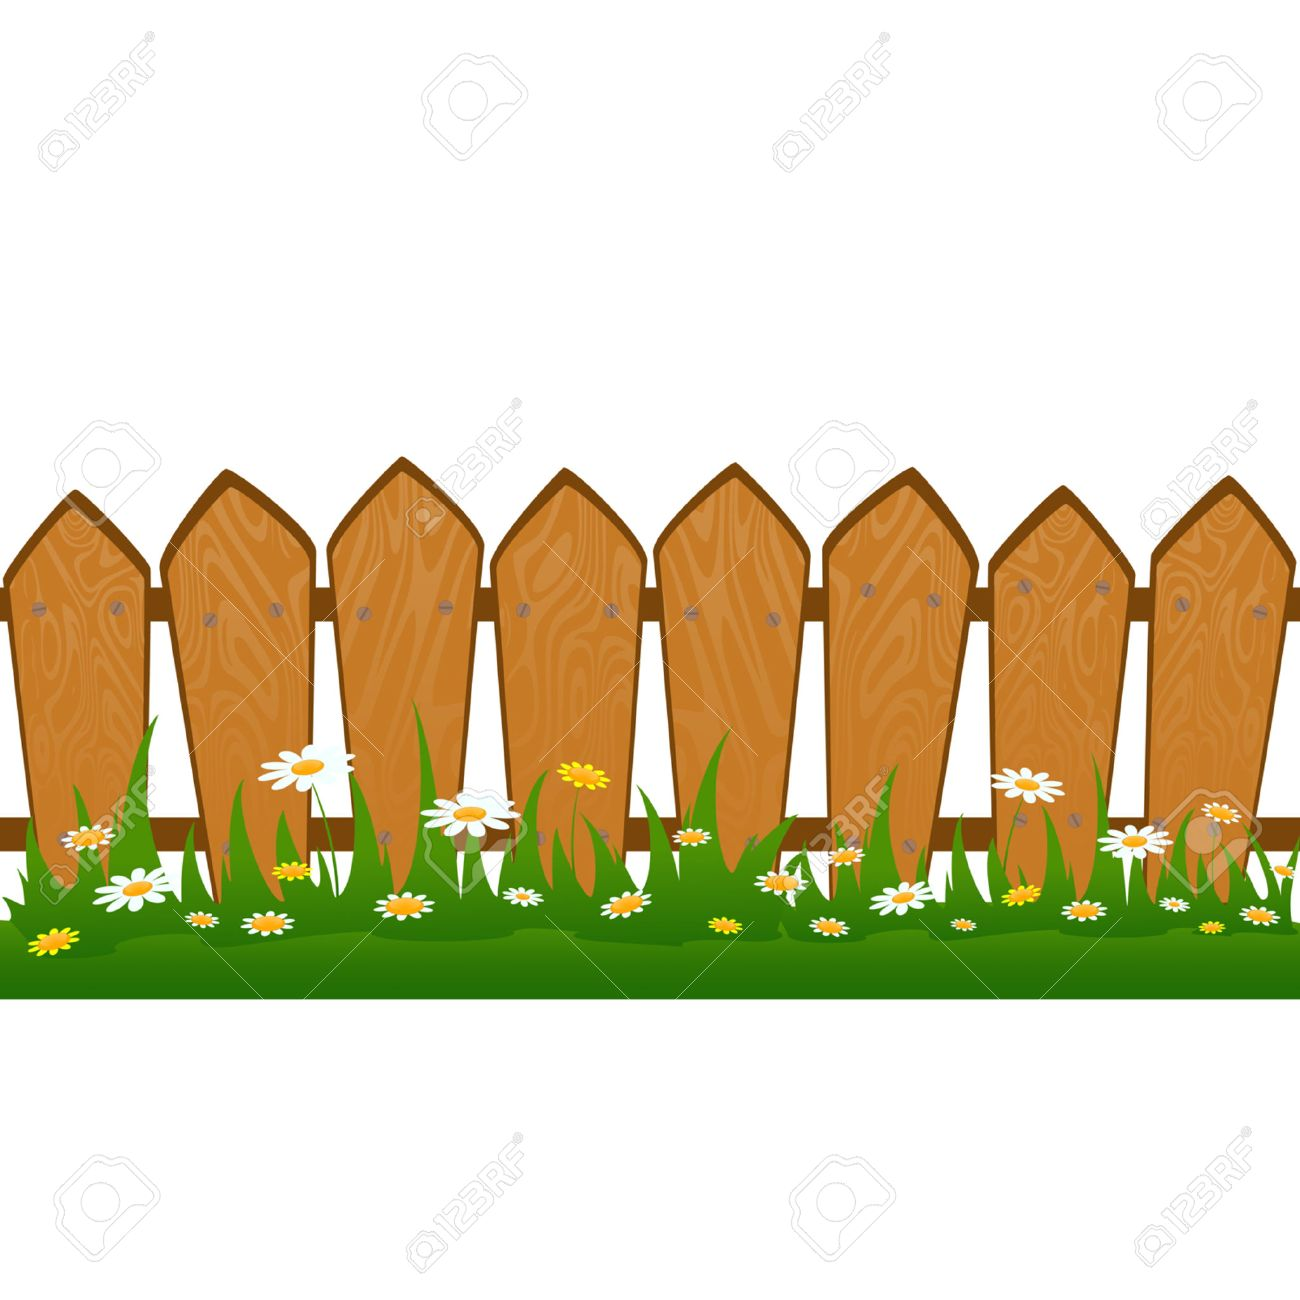 Country Fence Stock Vector - 8133926